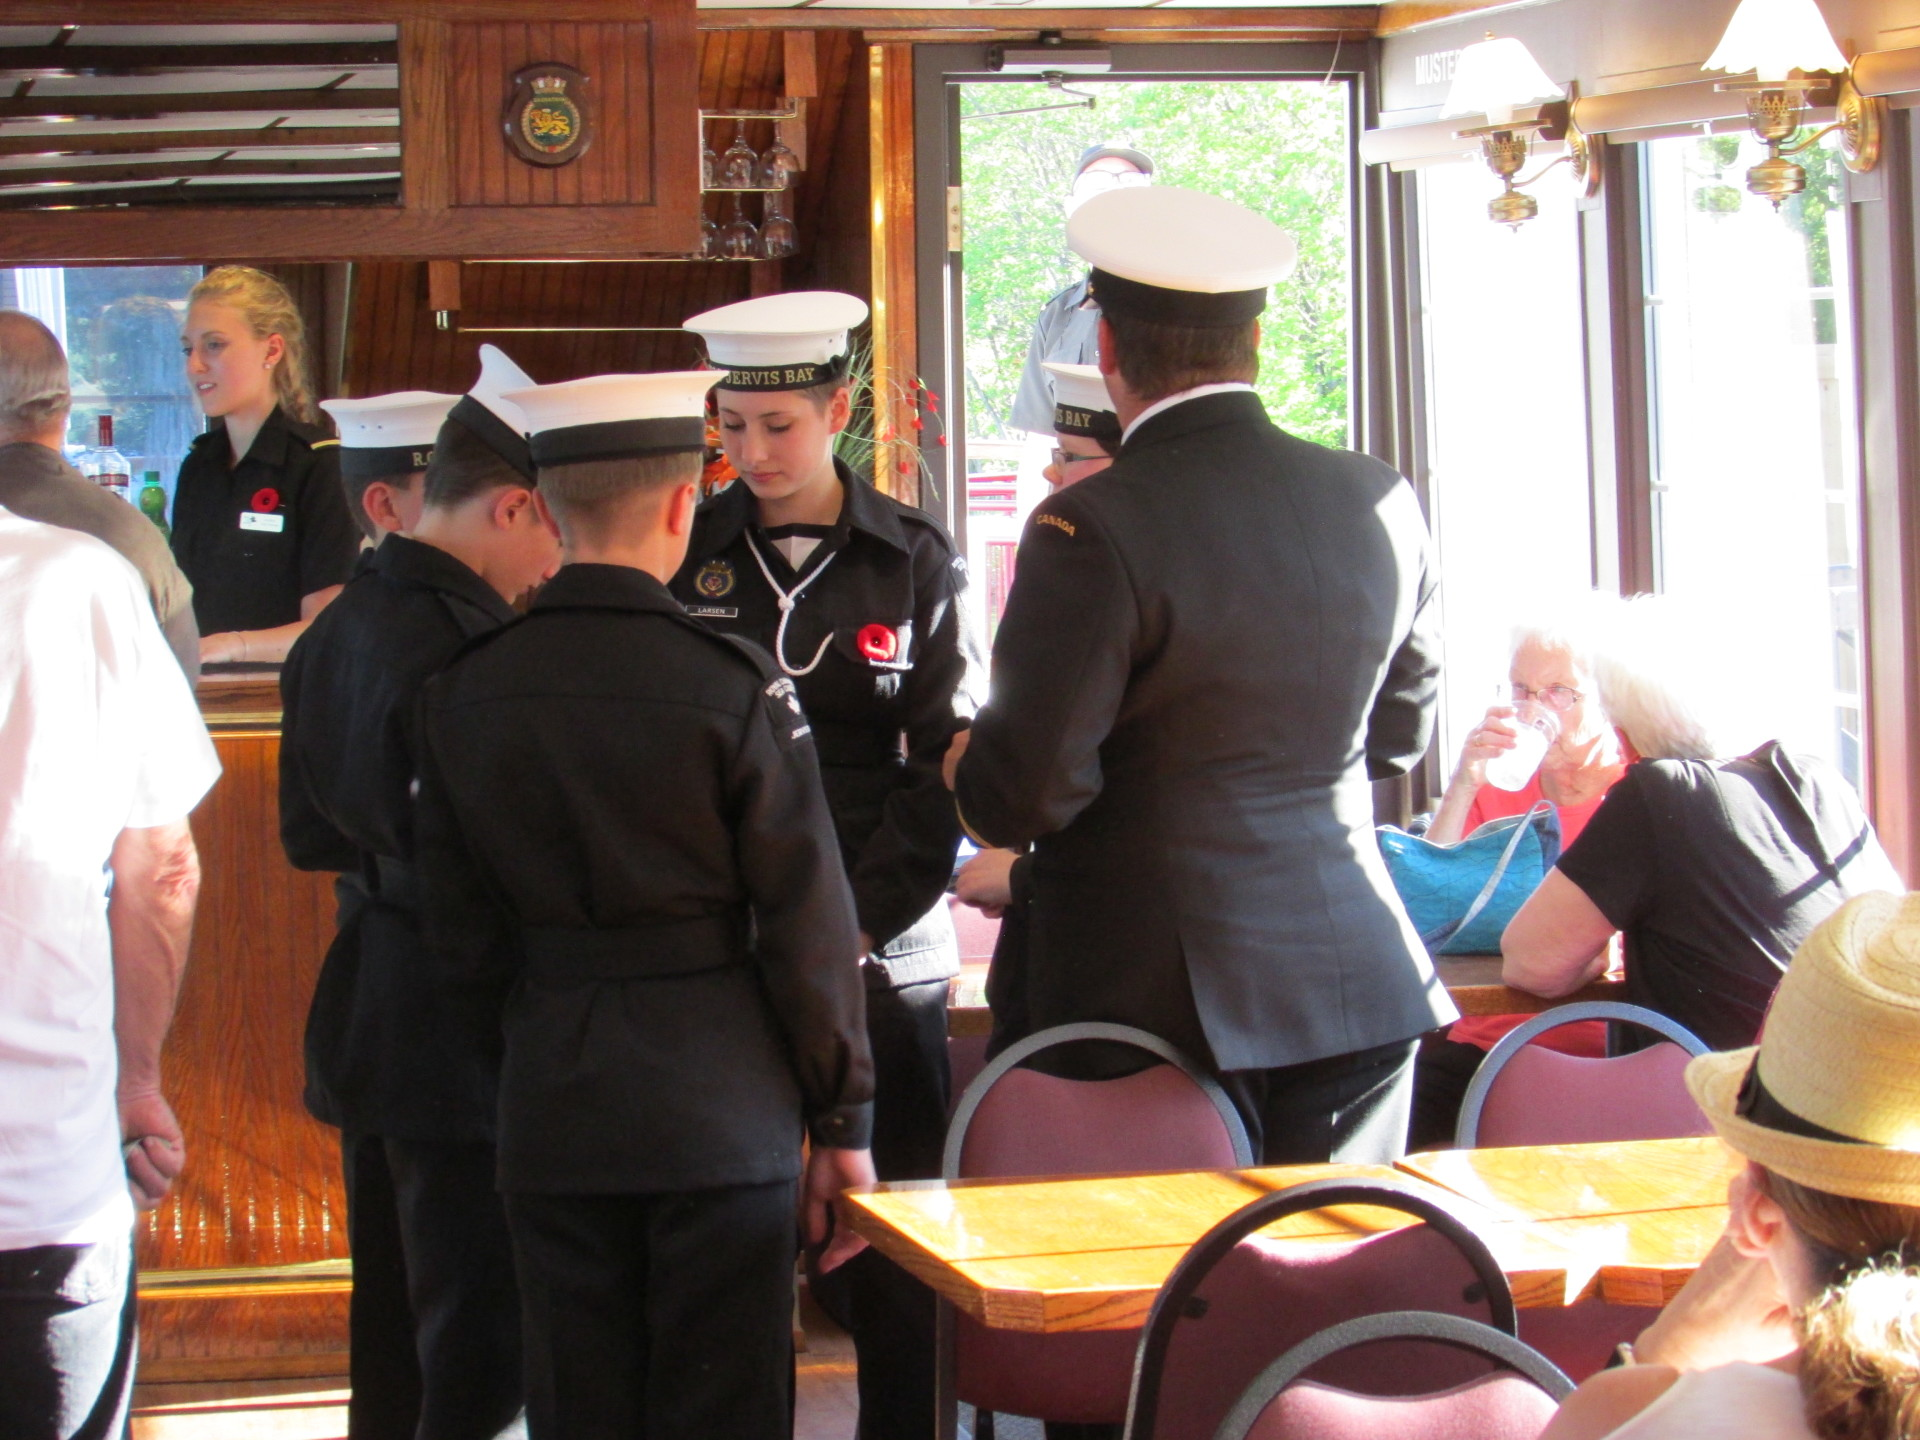 Jervis Bay Sea Cadets aboard the Legion Cruise